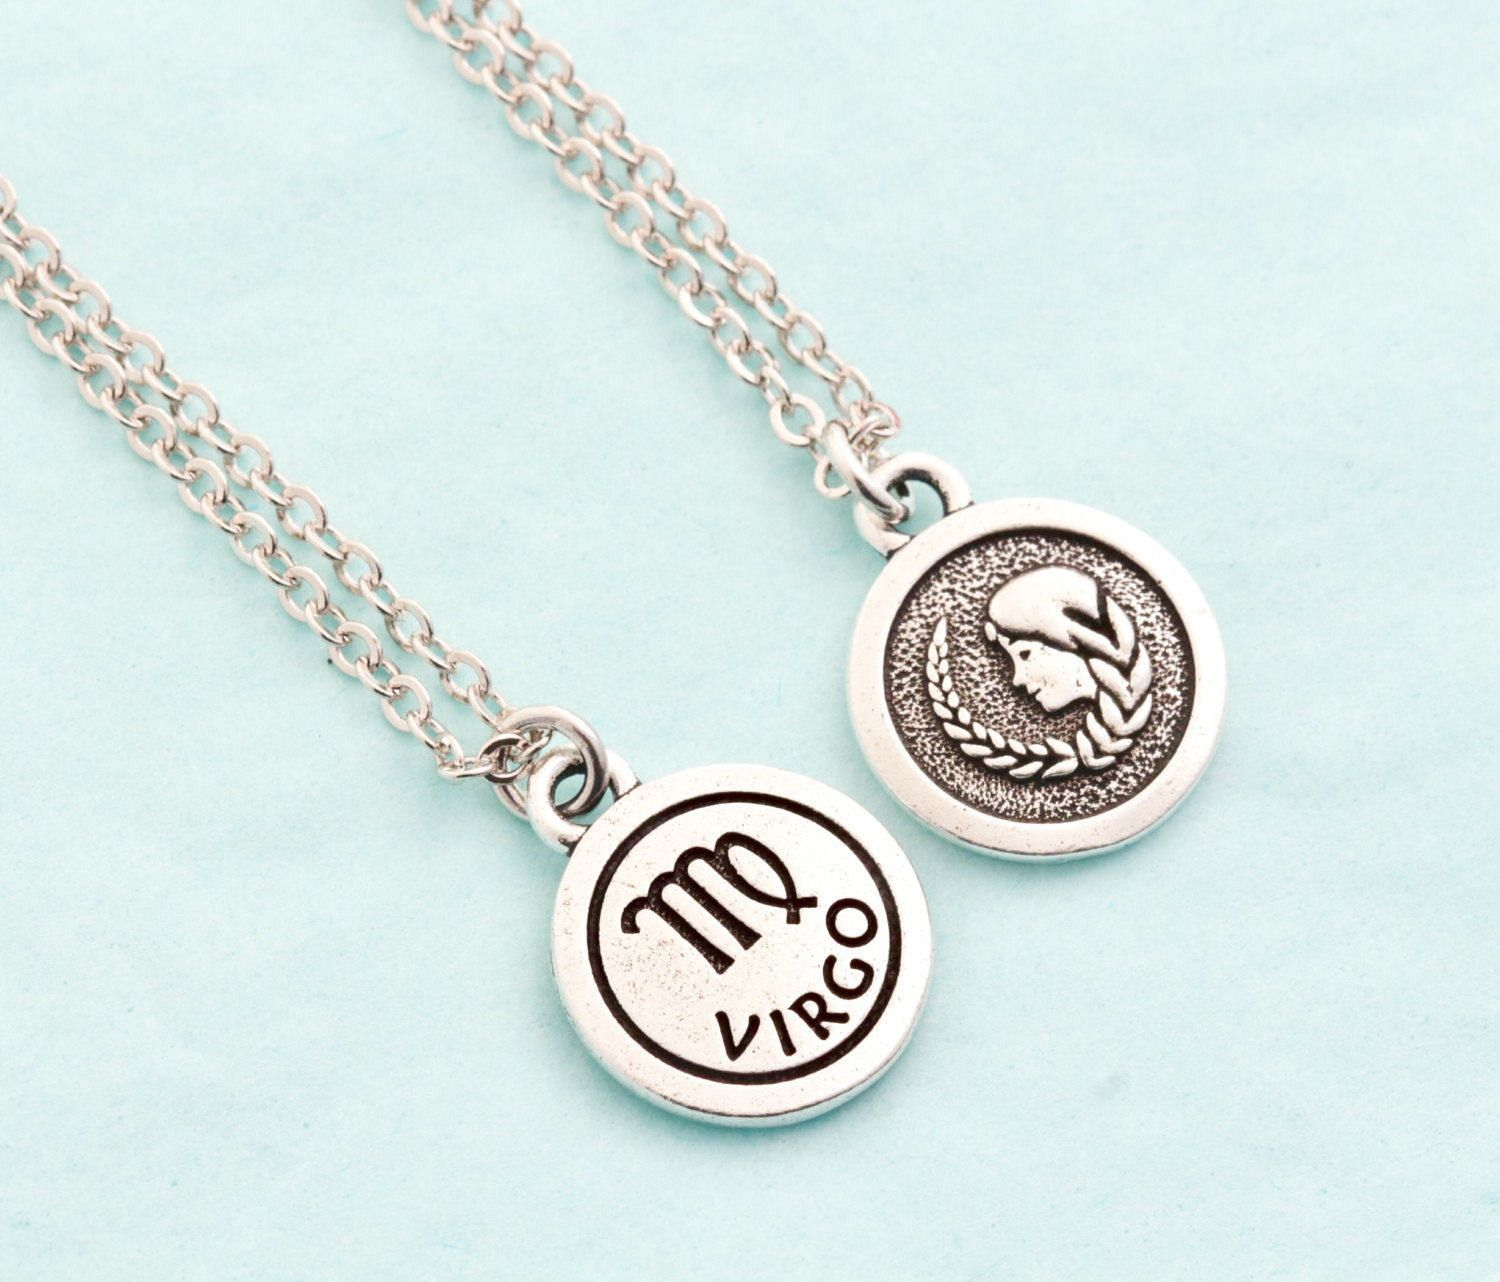 virgo necklace en tutti diamanti per